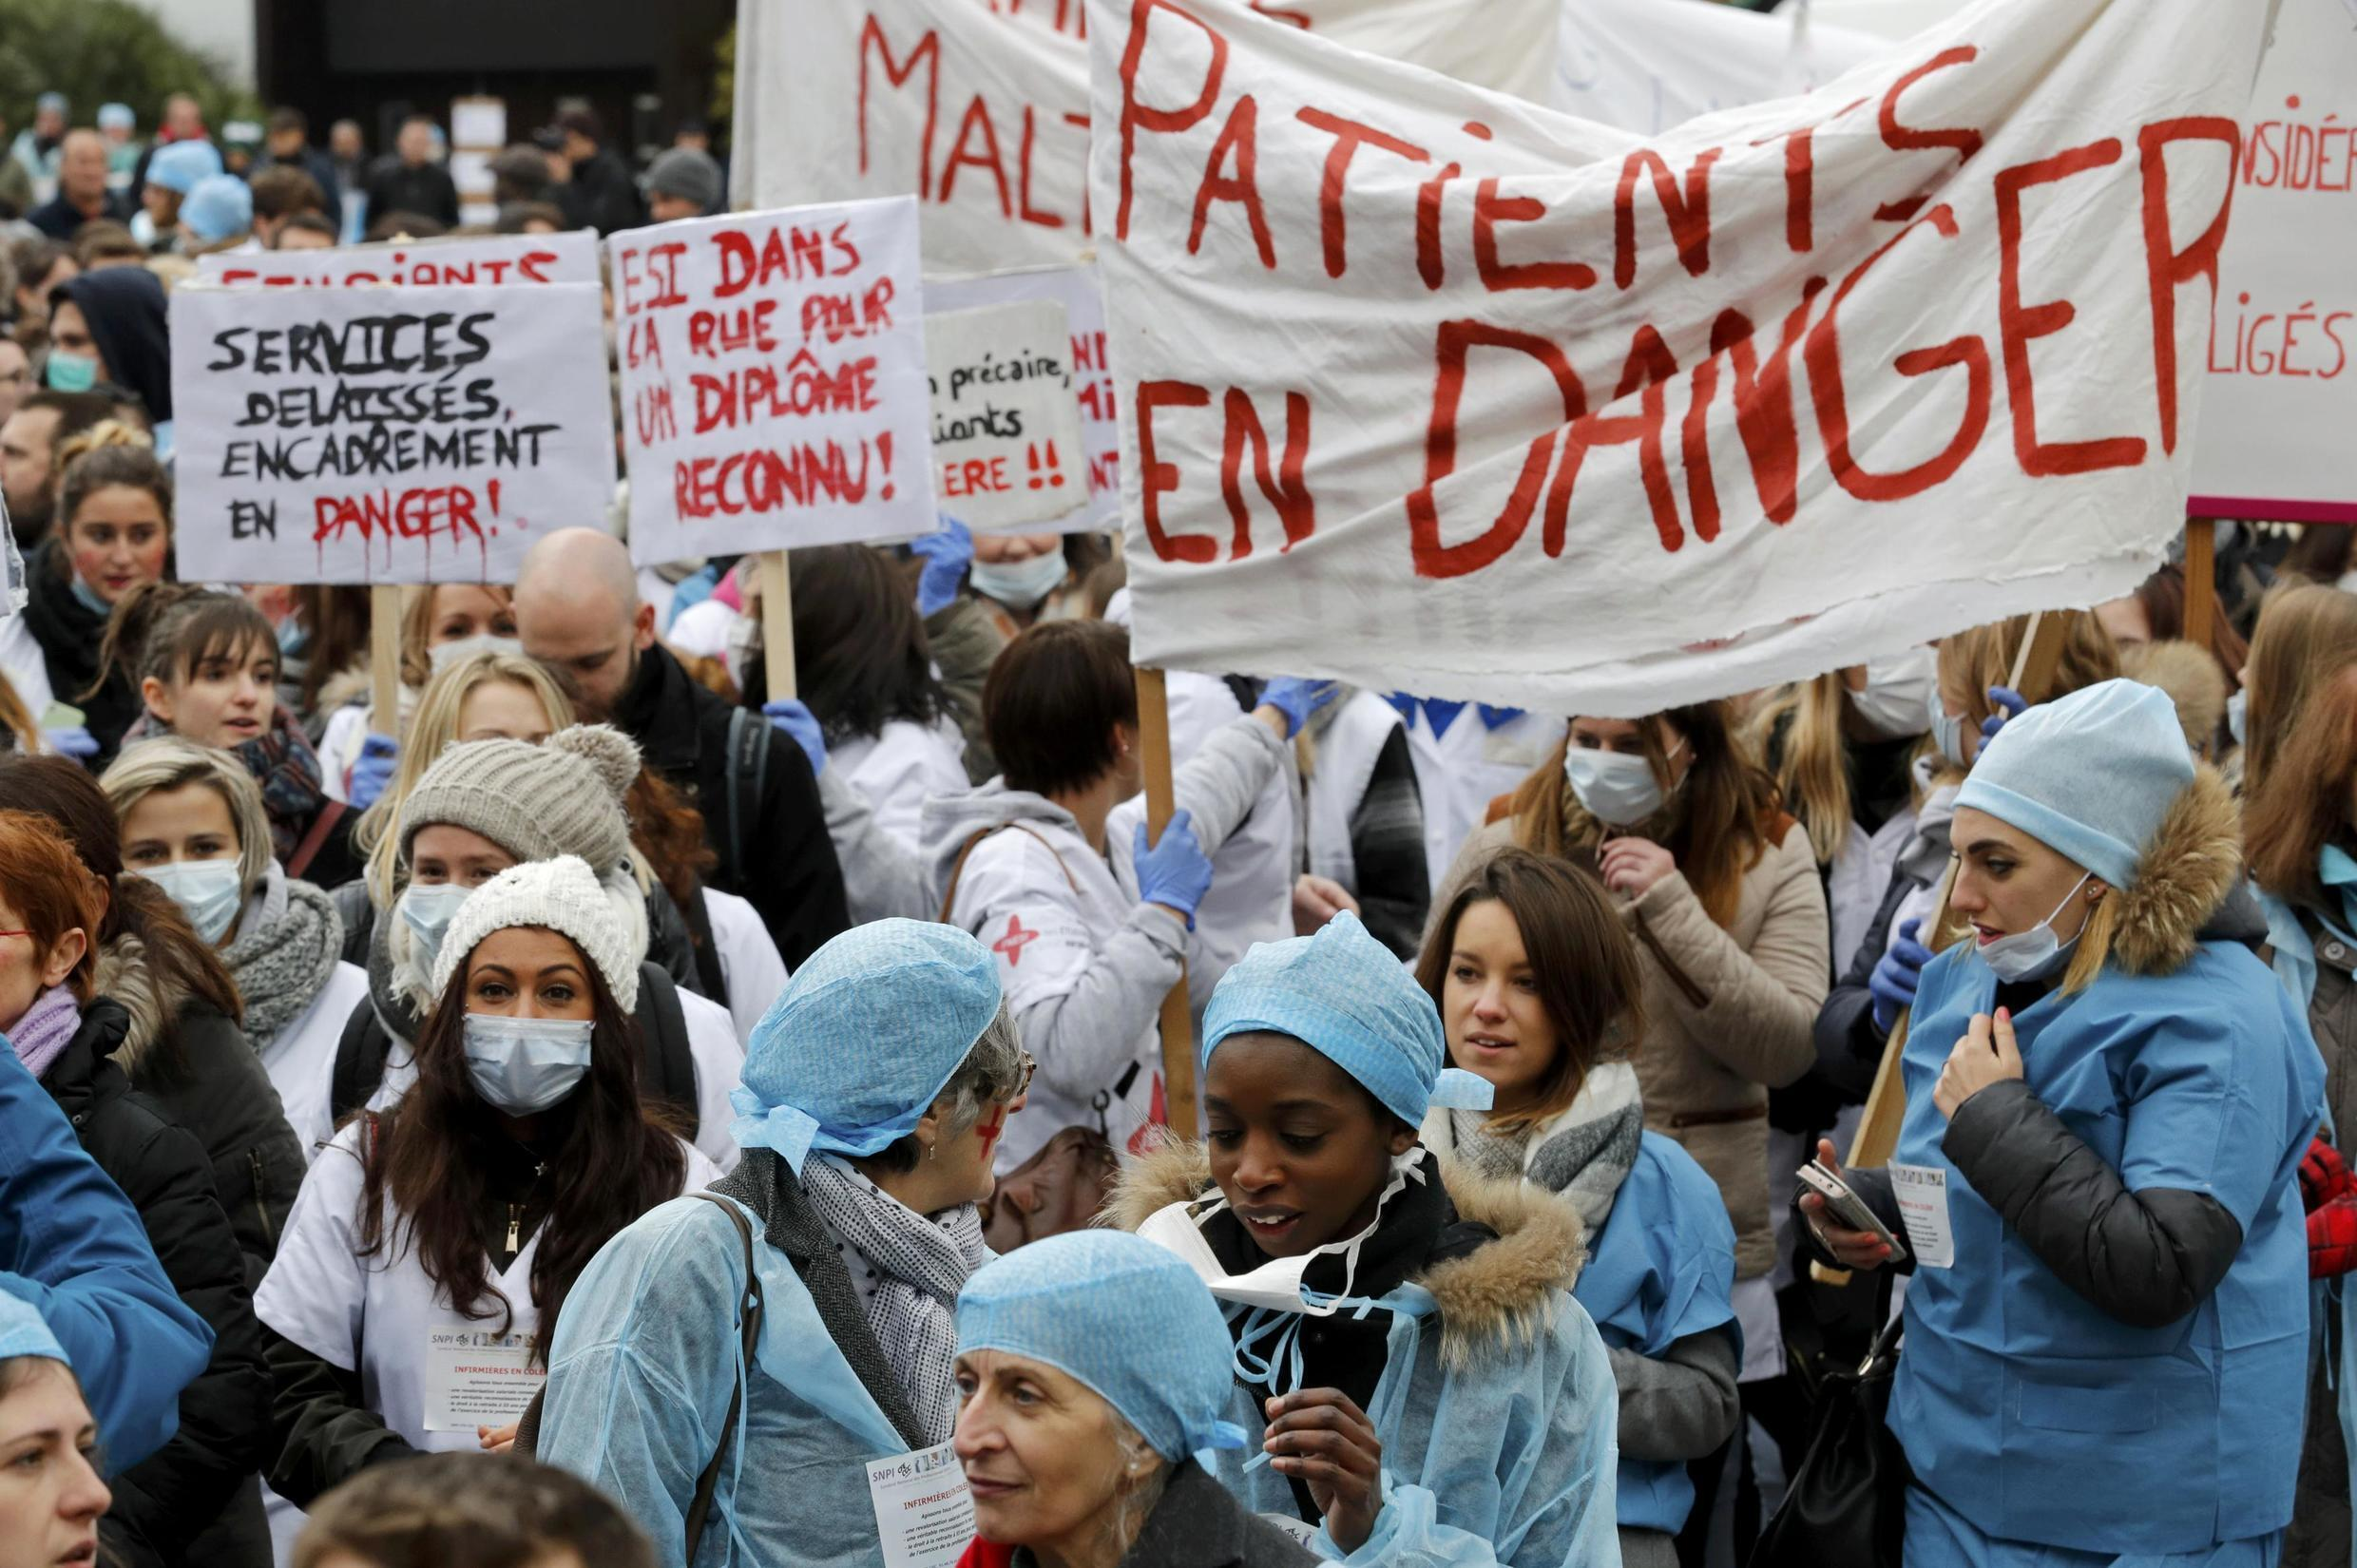 Nurses and health sector employees attend a demonstration to protest their working conditions in Paris in 2016